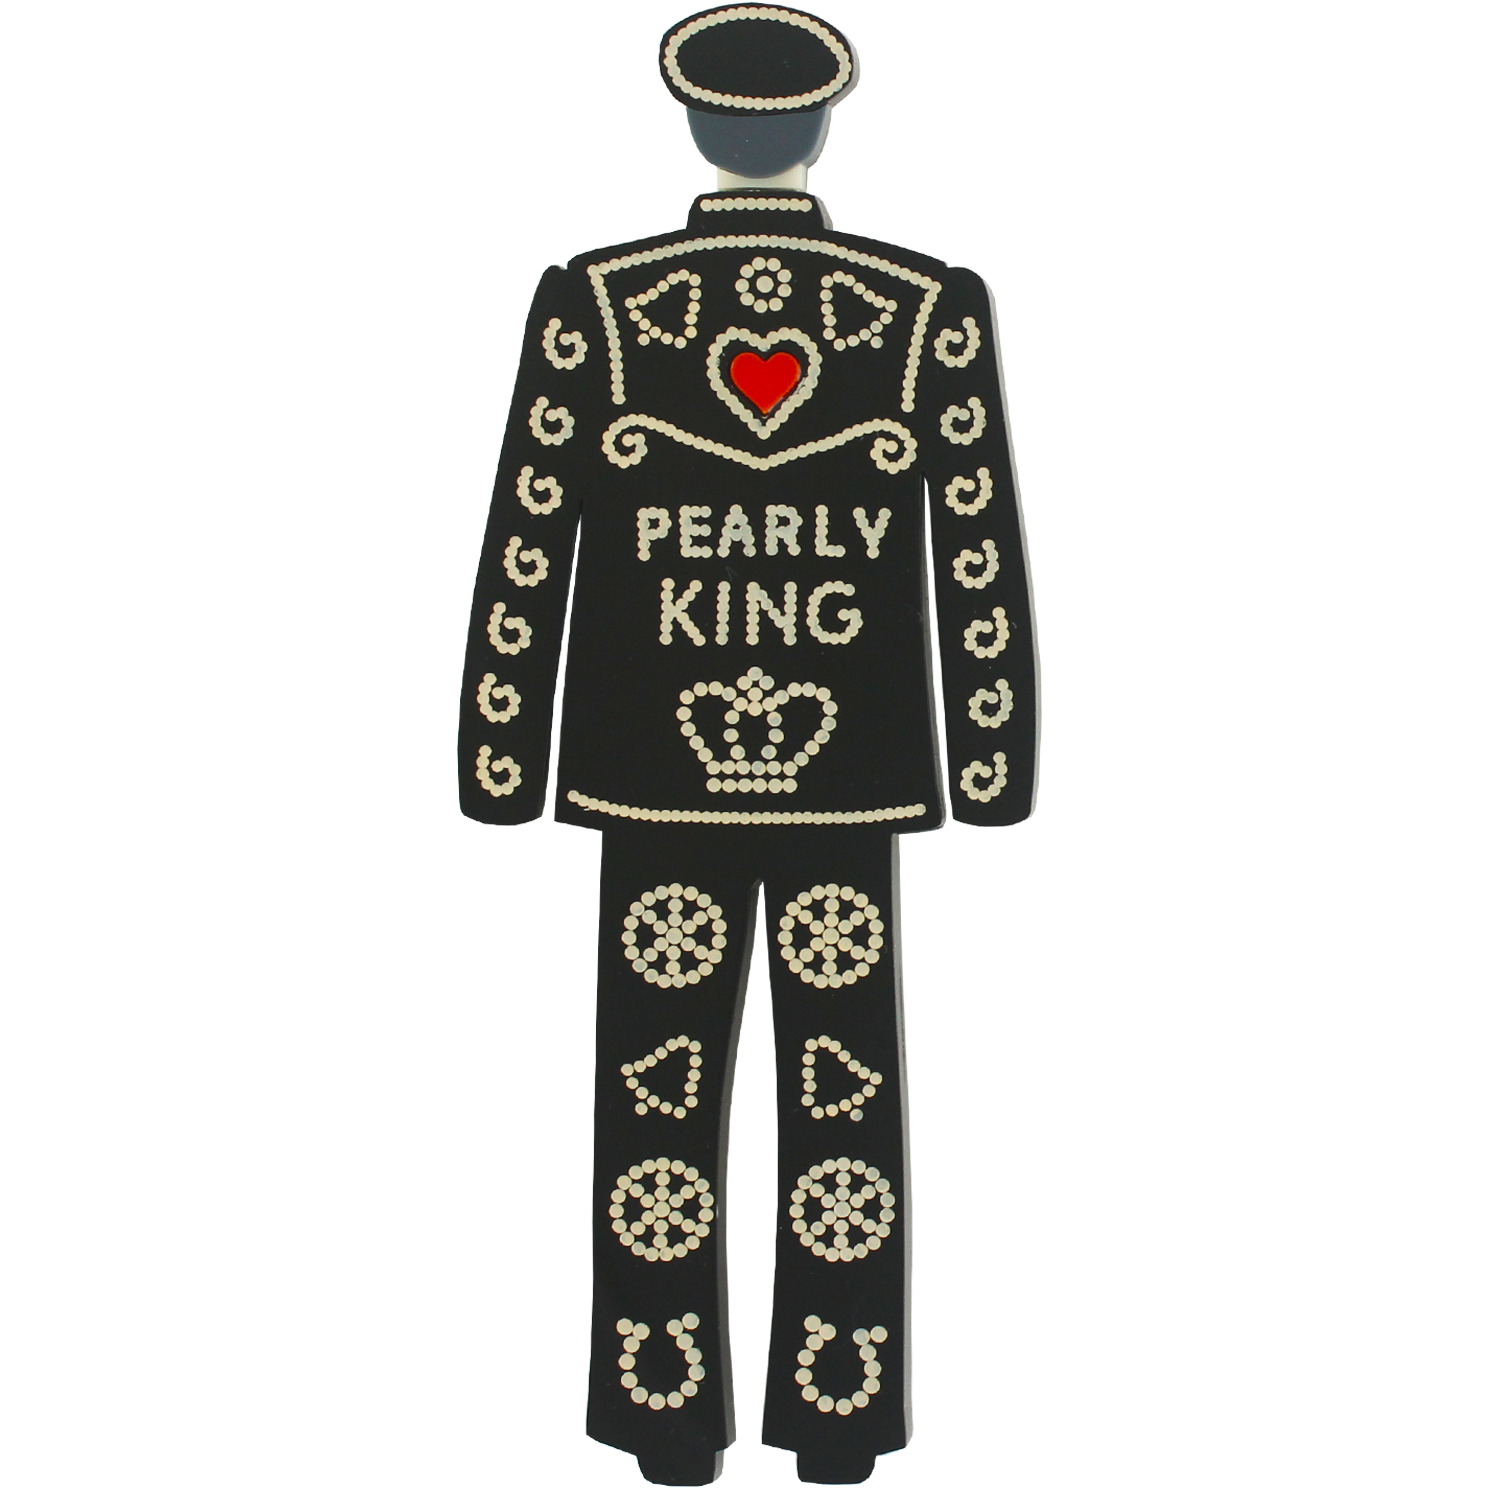 Pearly King brooch